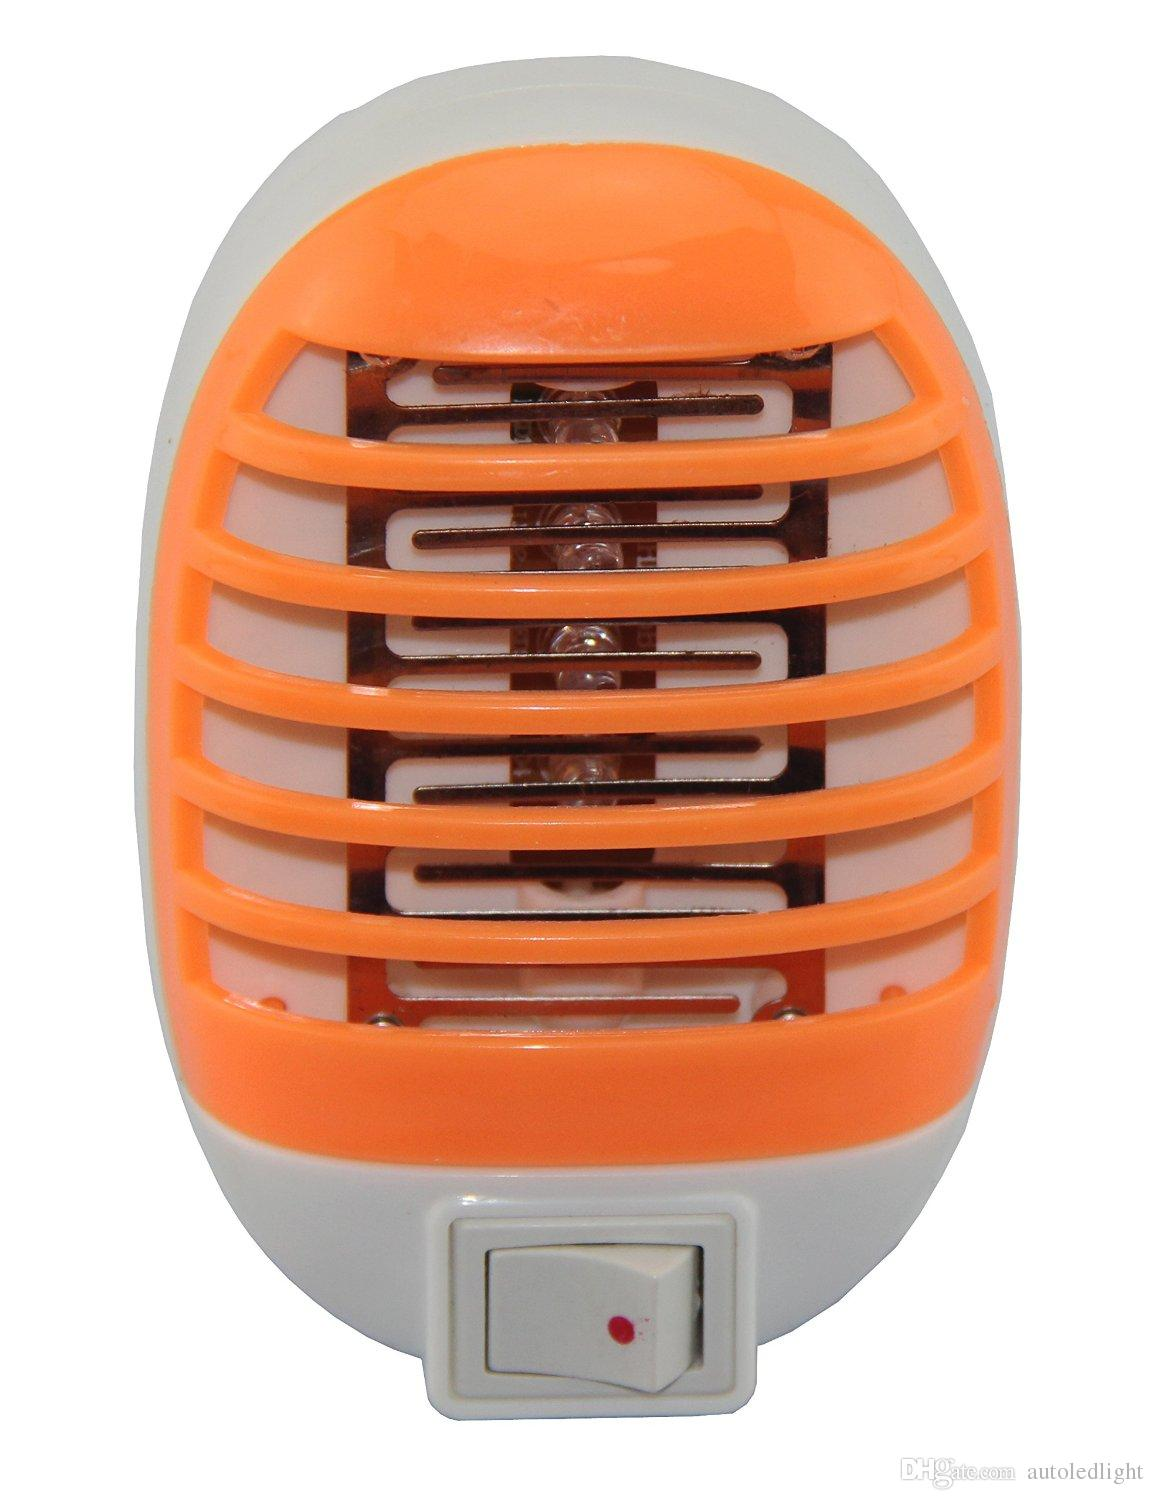 Bug Zapper Electronic Insect Killer,Mosquito Killer ,mosquito trap,mosquito  killer lamp,Eliminates all Flying Pests